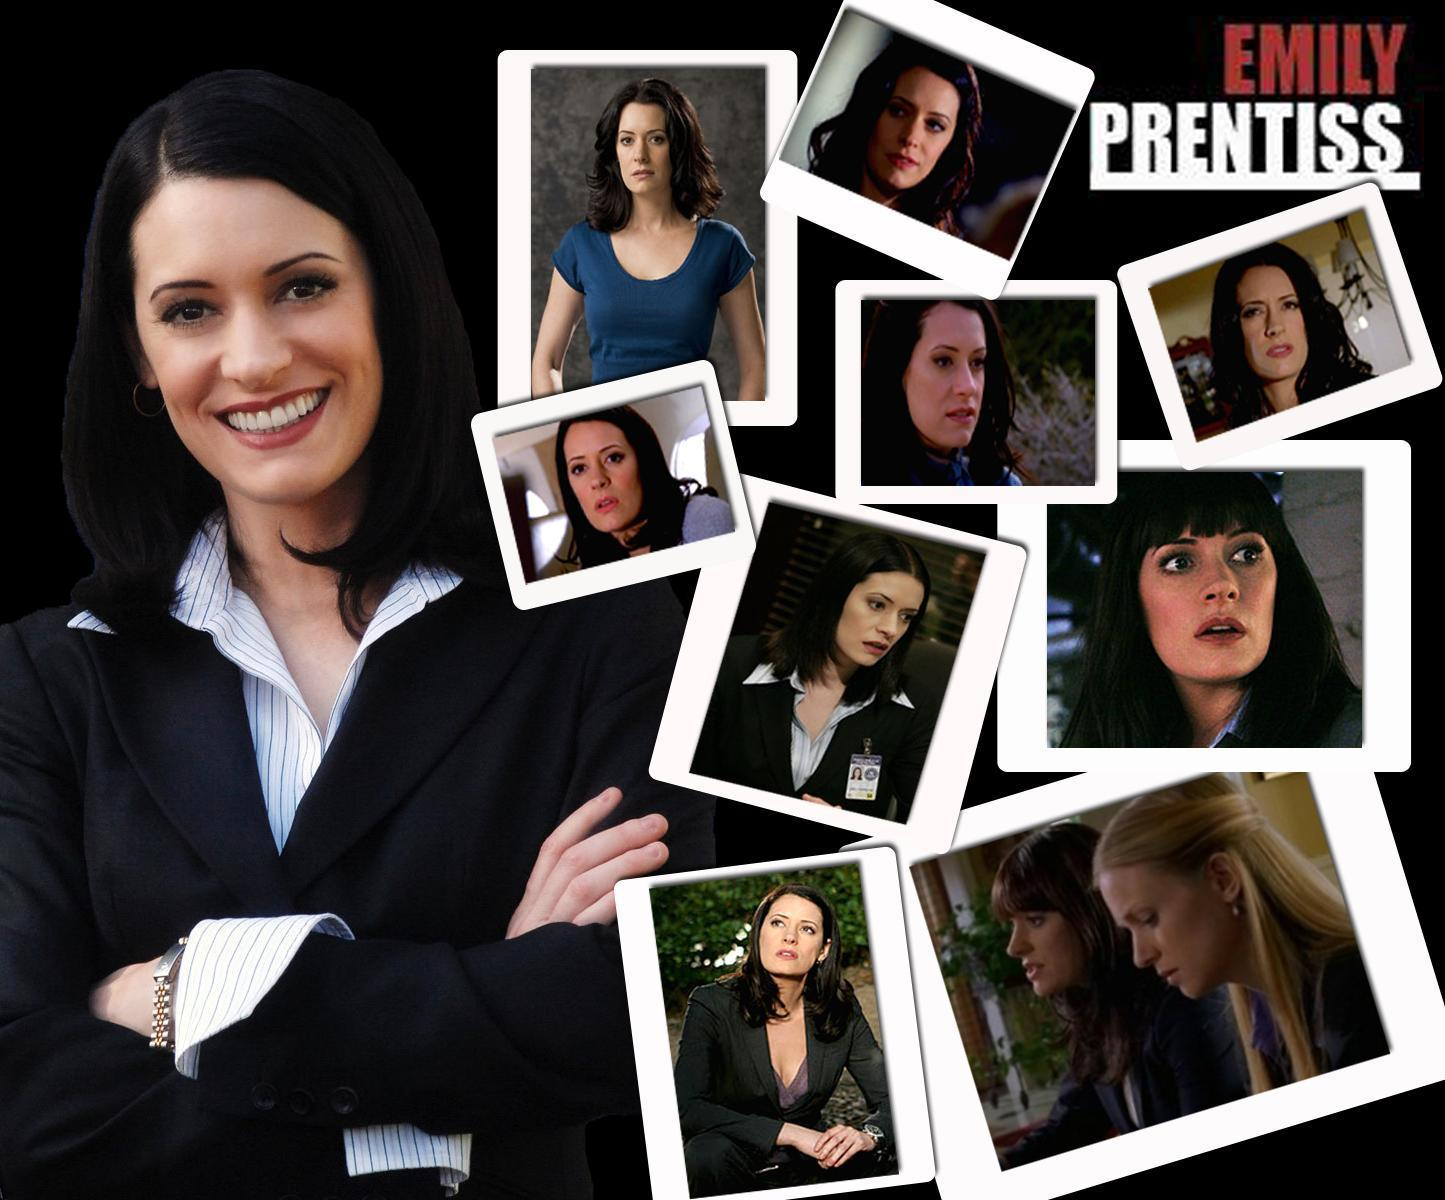 Emily Prentiss Leaving Criminal Minds http://freemangoclub.blogspot.com/2010/03/emily-prentiss.html